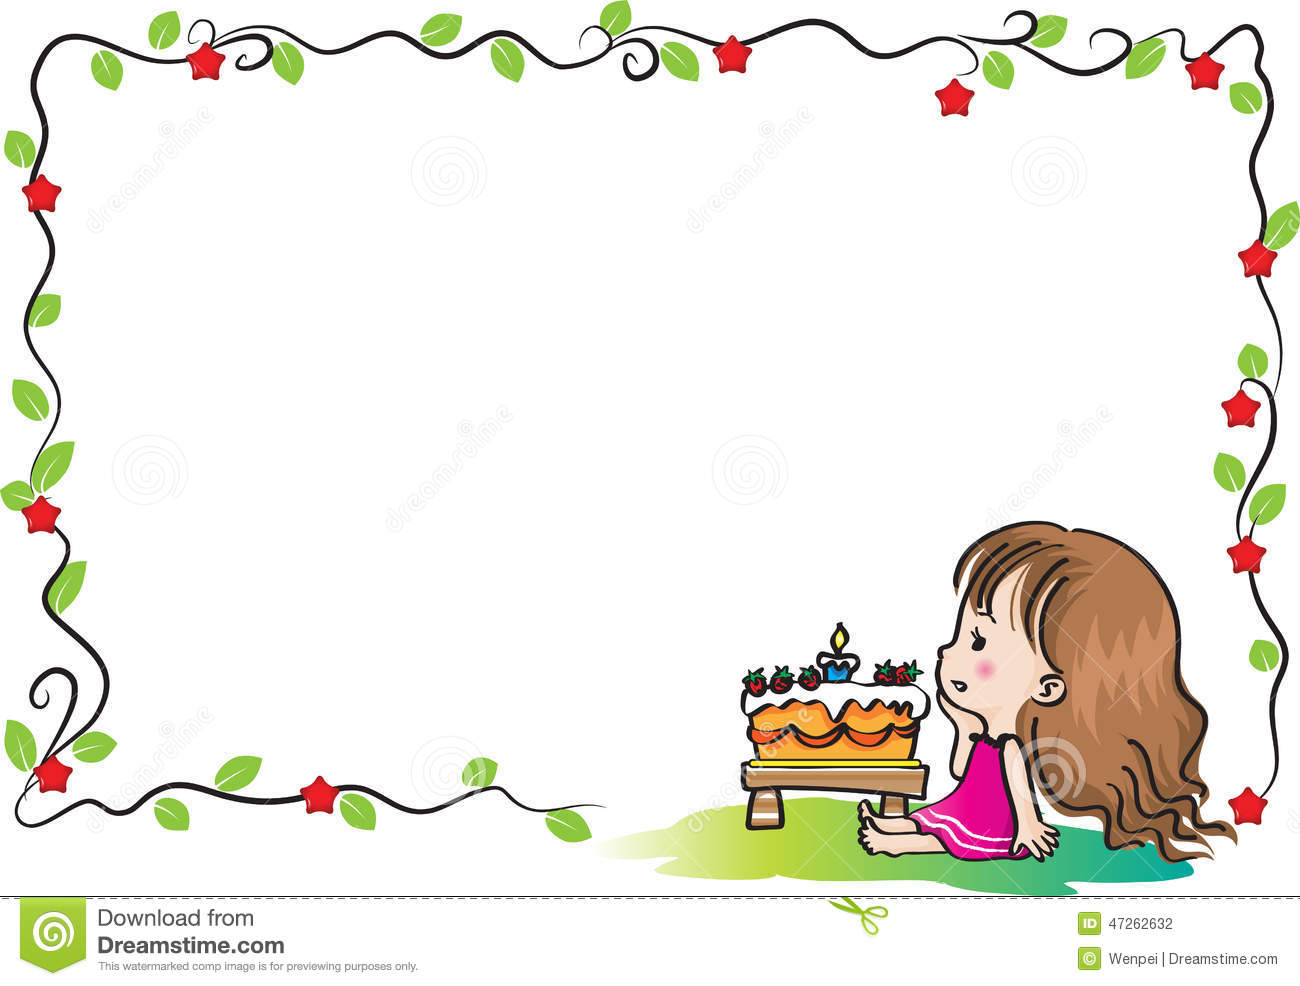 happy birthday border images ; happy-birthday-card-border-frame-vector-drawing-cartoon-47262632